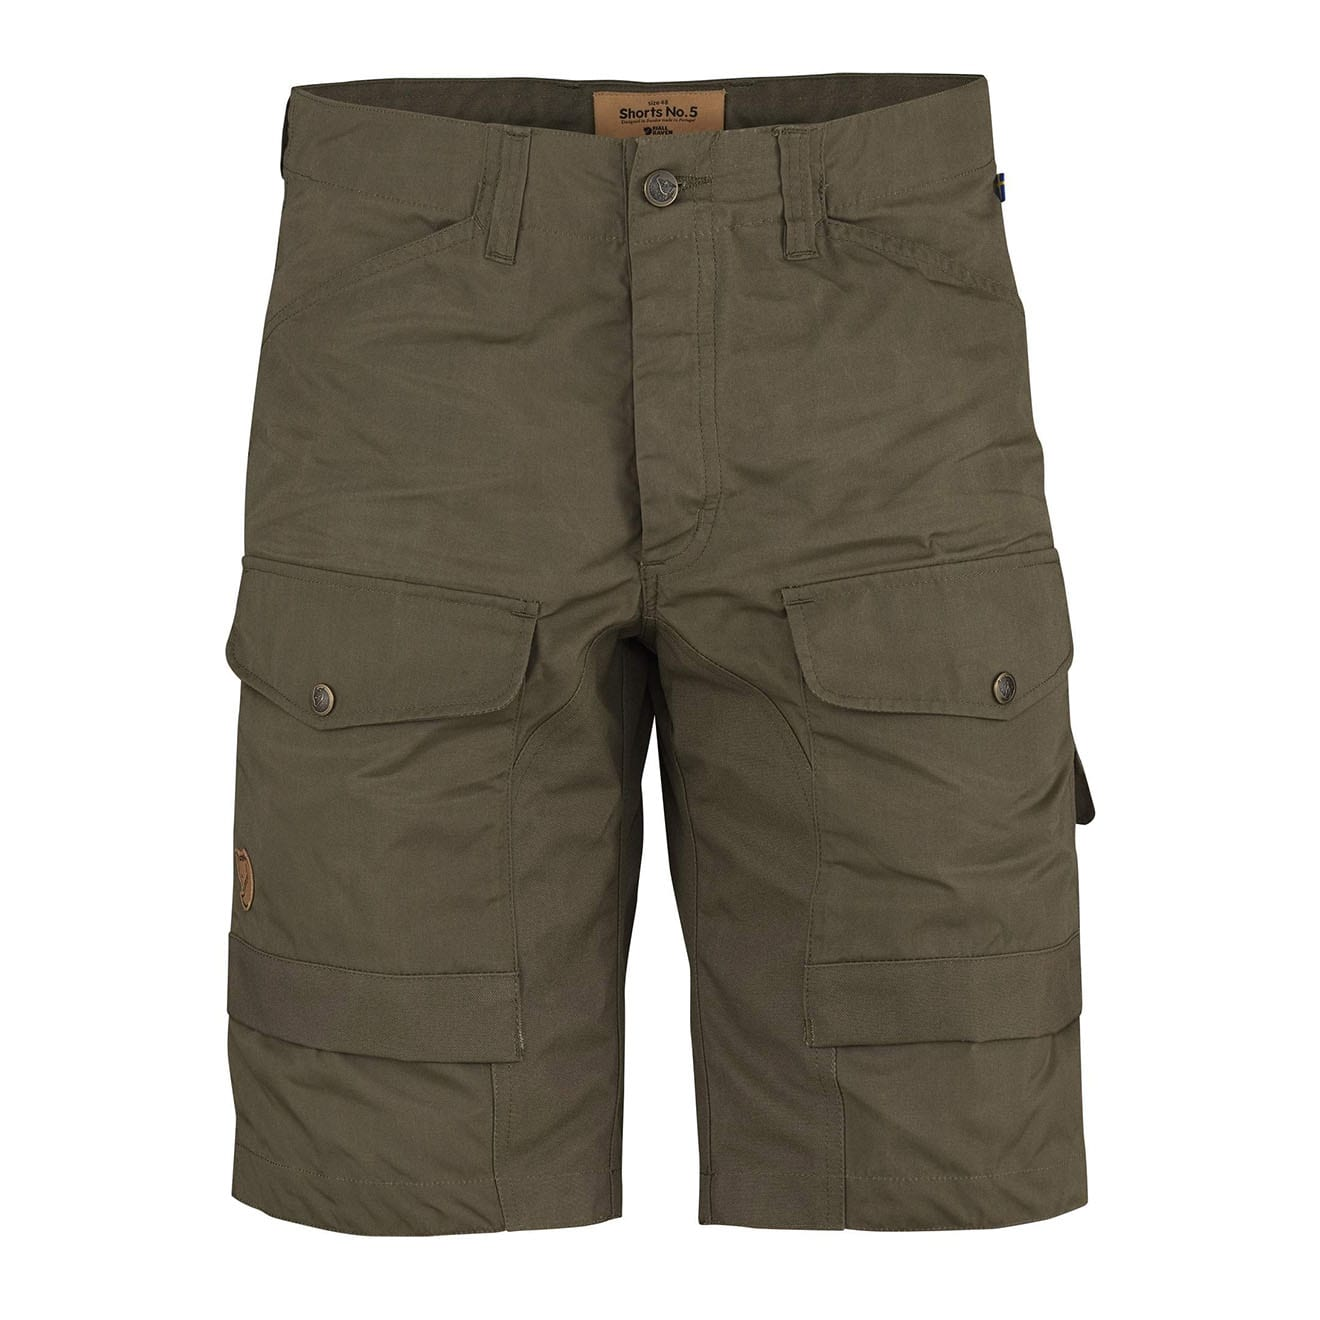 Fjallraven Shorts No 5 Tarmac